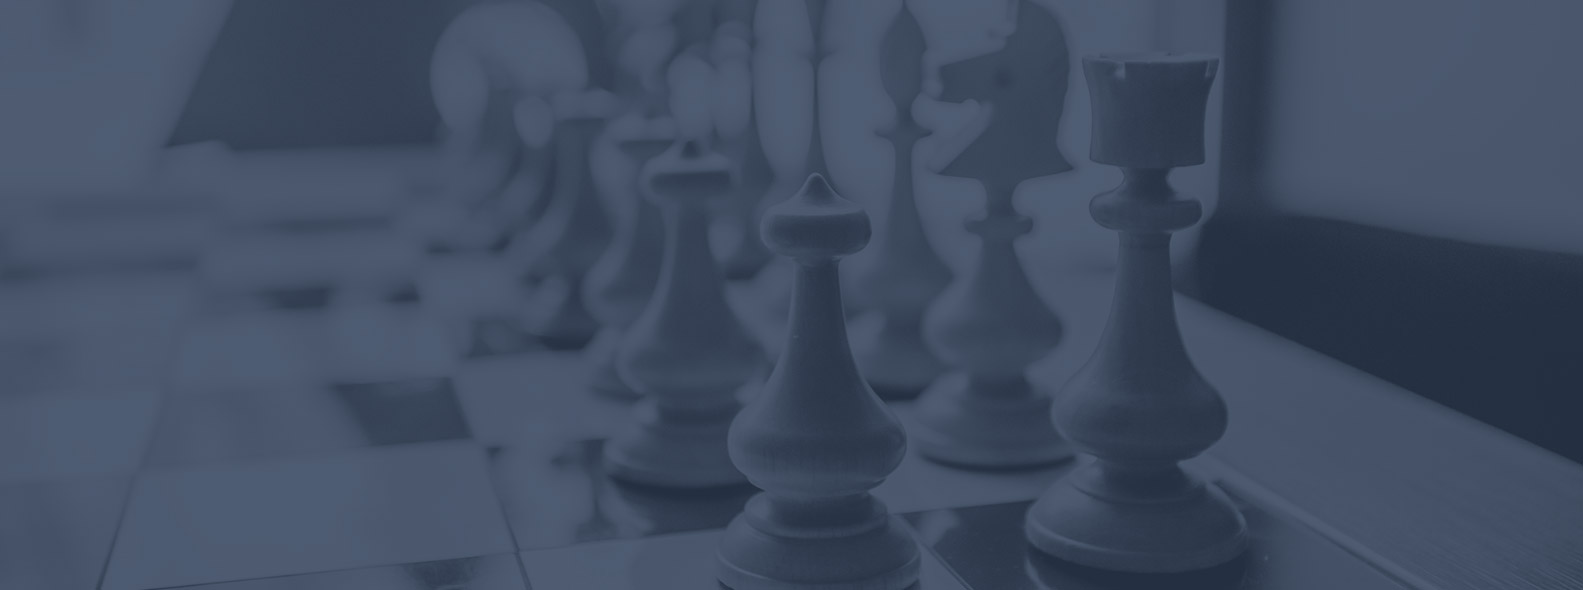 Chess pieces on a board offering efficiency and profitability through due diligence for your accounting firm